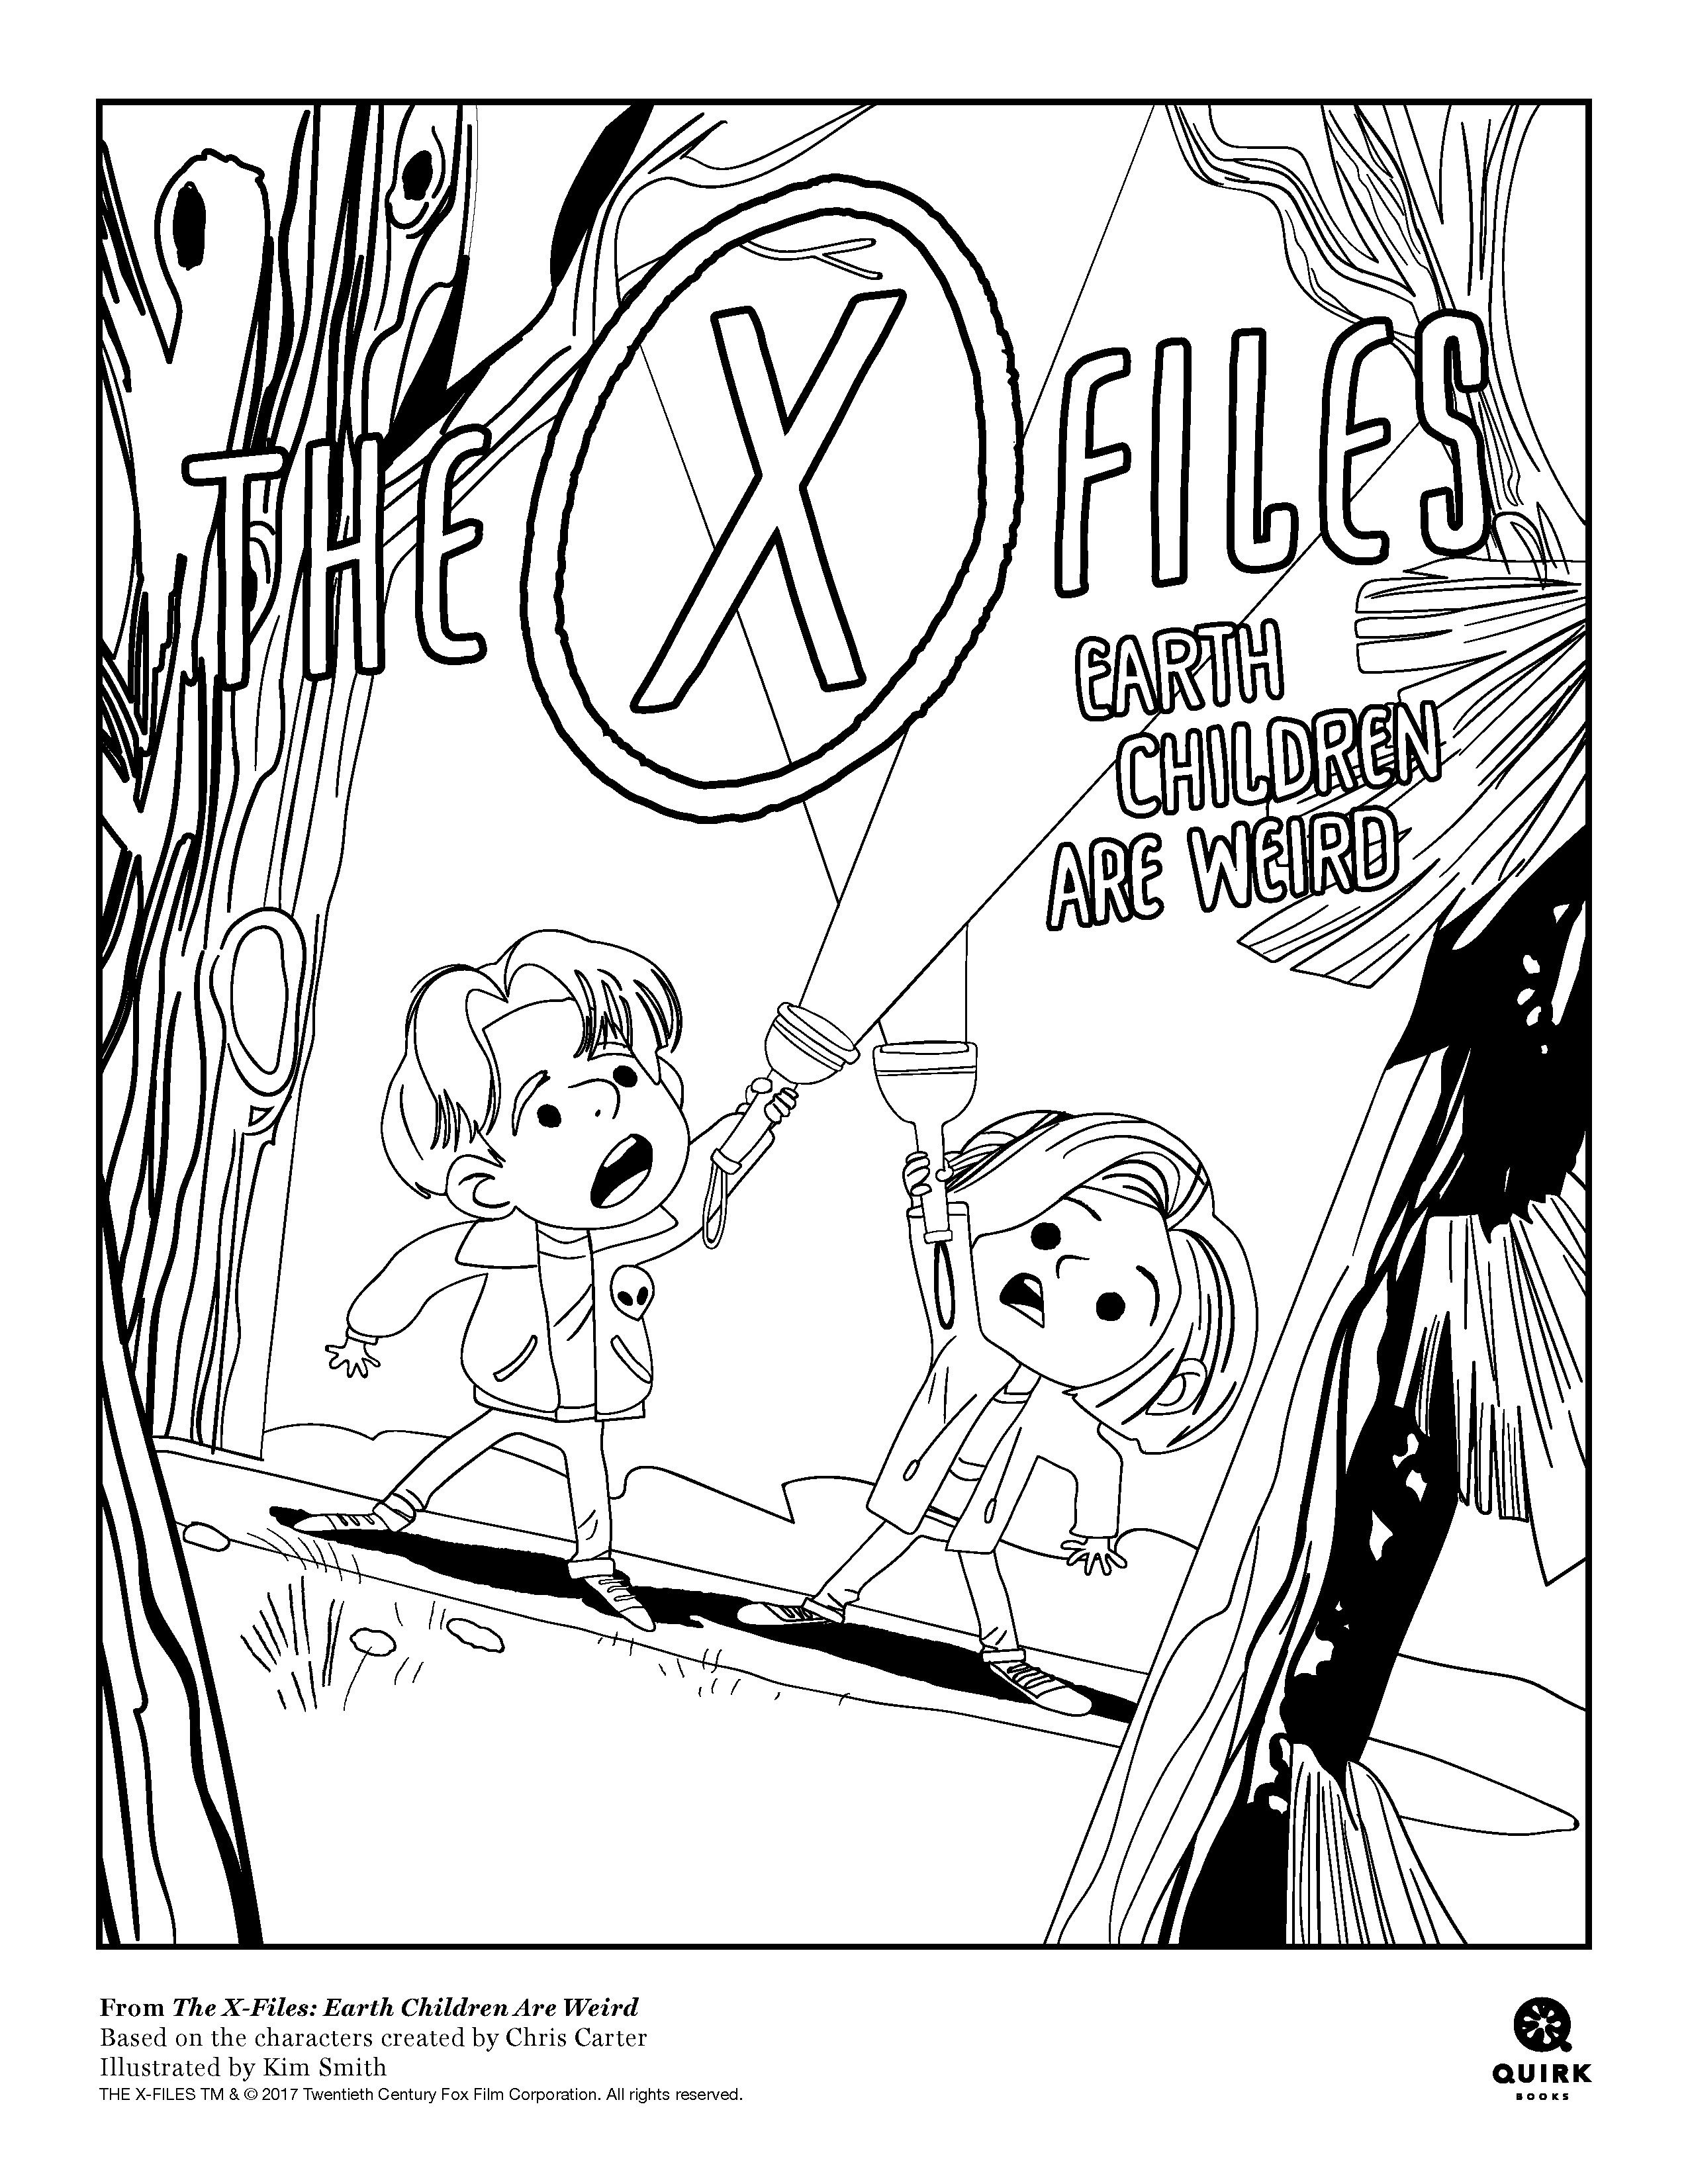 The Truth Is Out There Get Involved In The Fun With Our The X Files Children Are Weird Coloring Sheets Xfile Geek Crafts X Files Banned Books Week Display